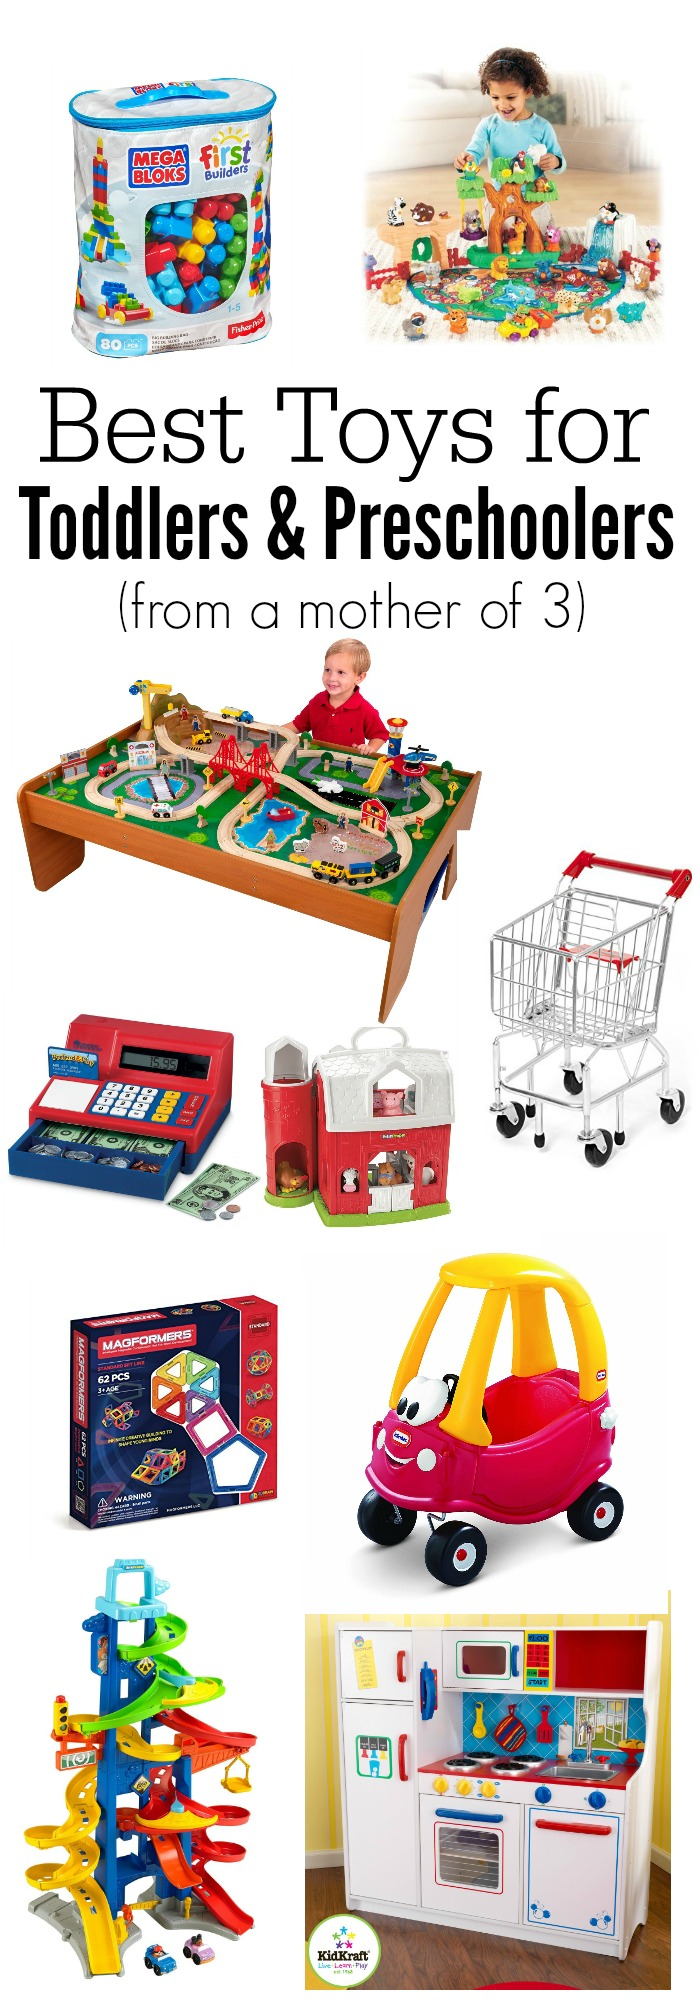 Best toys for toddlers and preschoolers from a mother of 3. These toys are durable, long lasting, promote imaginative and creative play, and are well loved. gift guide | top picks | Christmas | gifts |